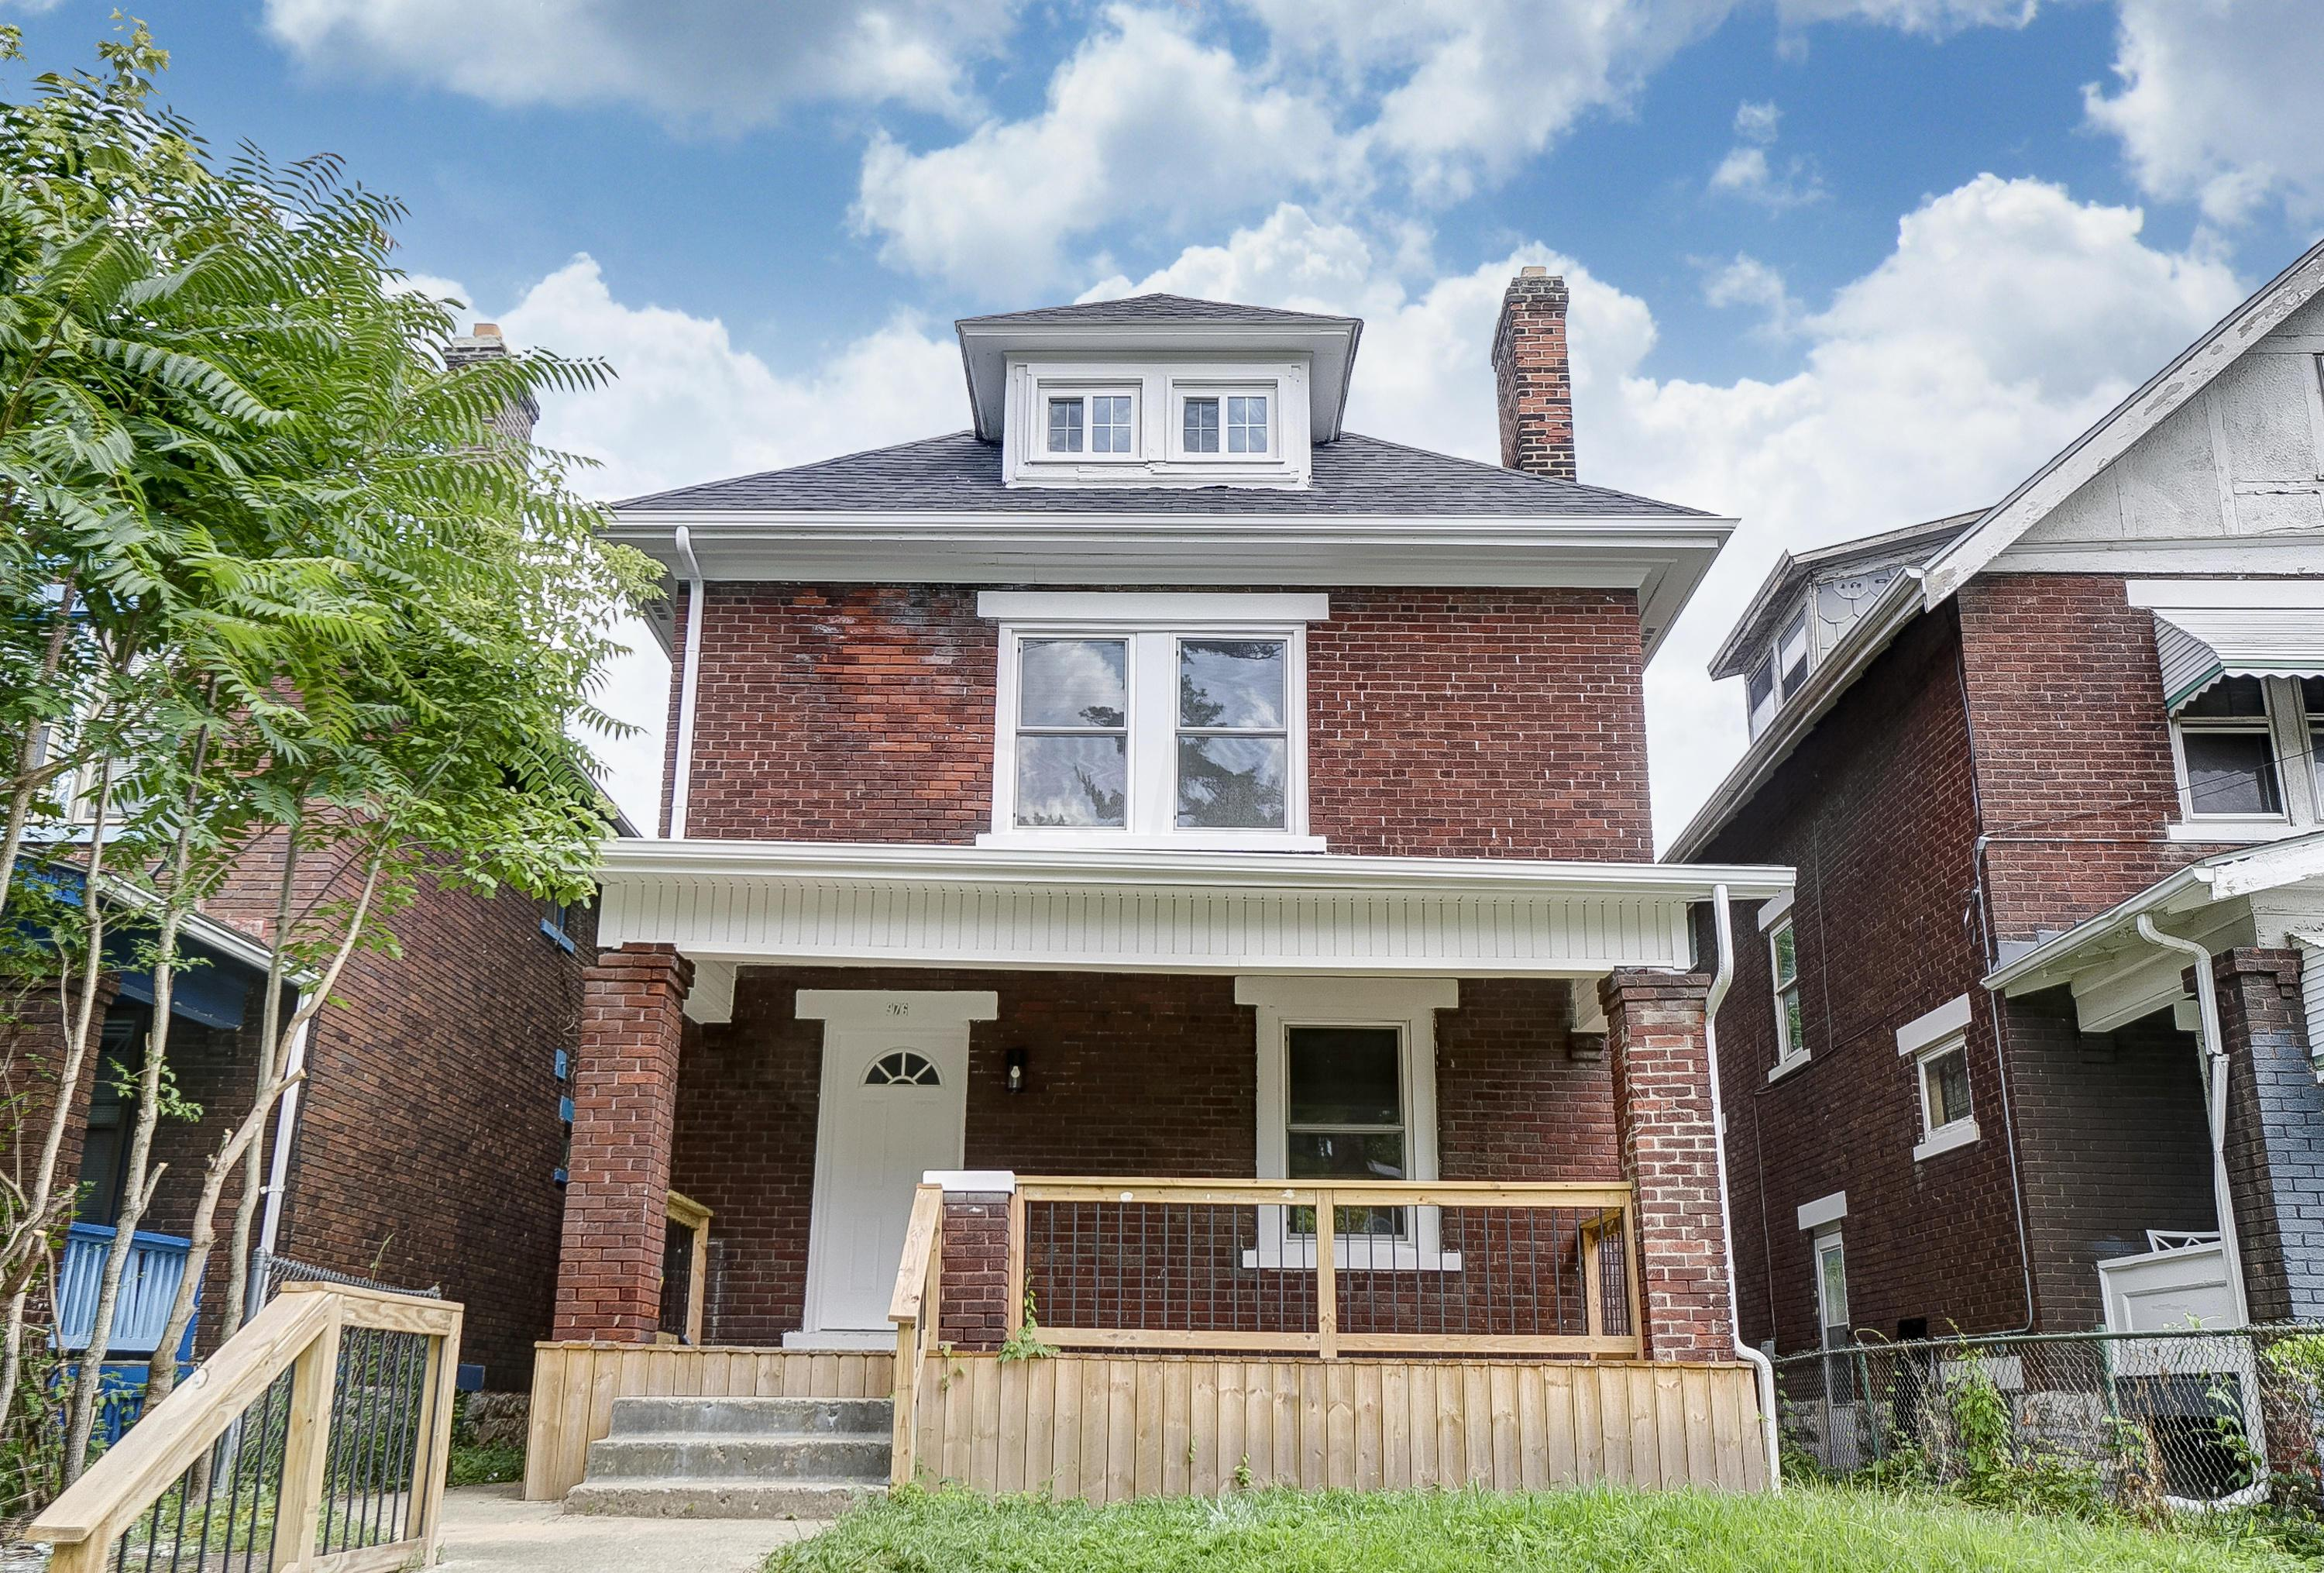 976 22nd Street, Columbus, Ohio 43206, 3 Bedrooms Bedrooms, ,3 BathroomsBathrooms,Residential,For Sale,22nd,220024771